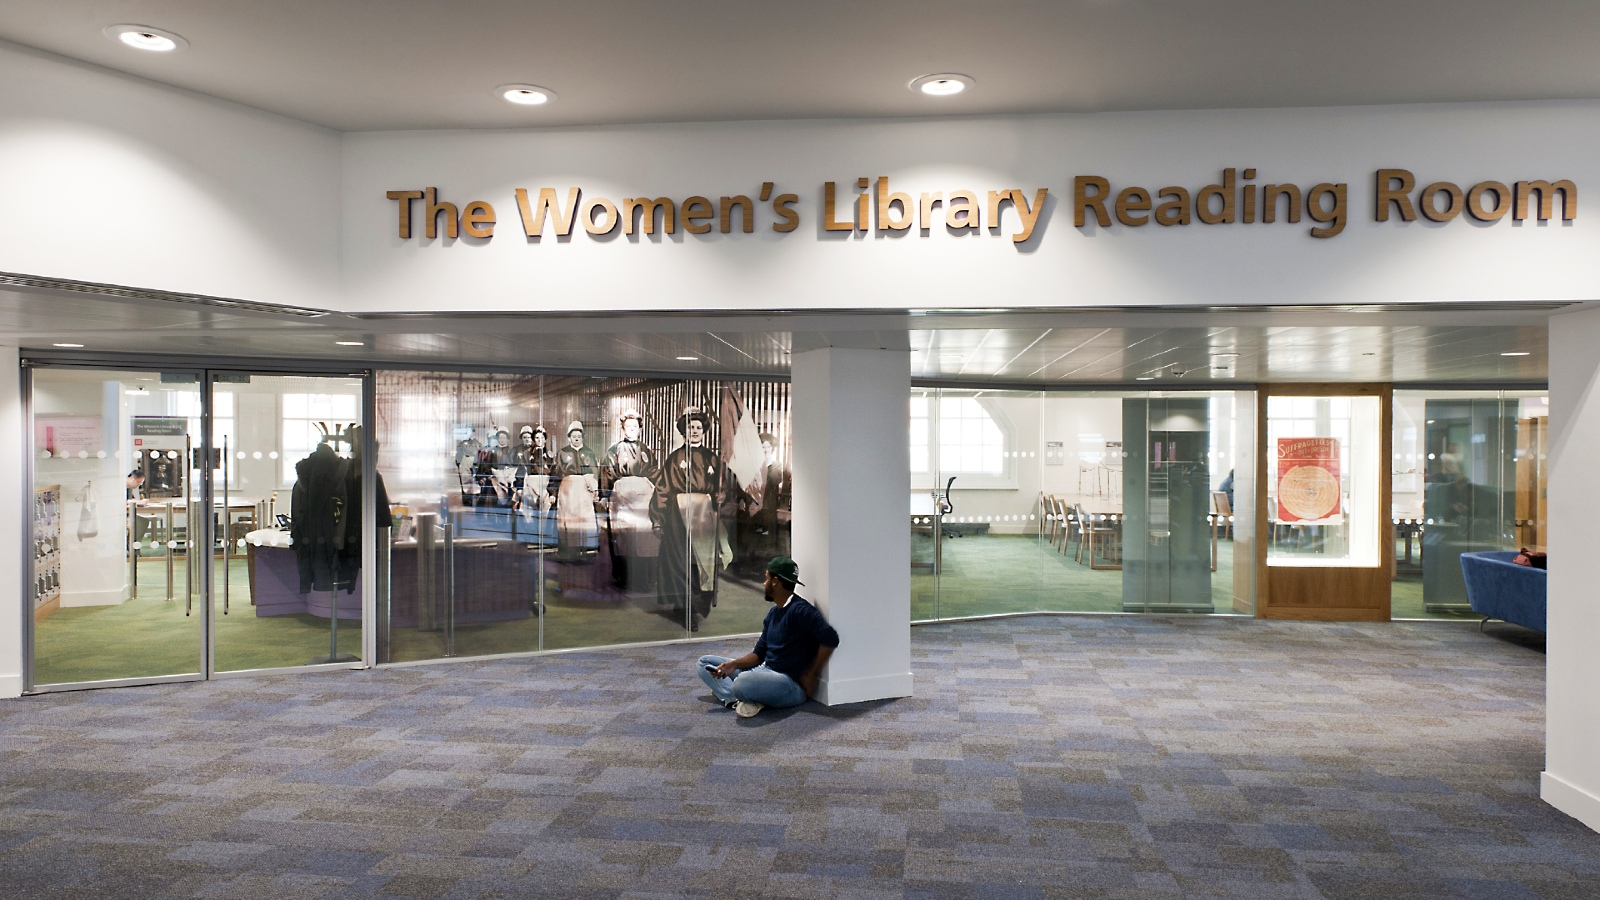 A view on the 4th floor of the Library outside and looking into The Women's Library Reading Room. A student is seated on the floor.